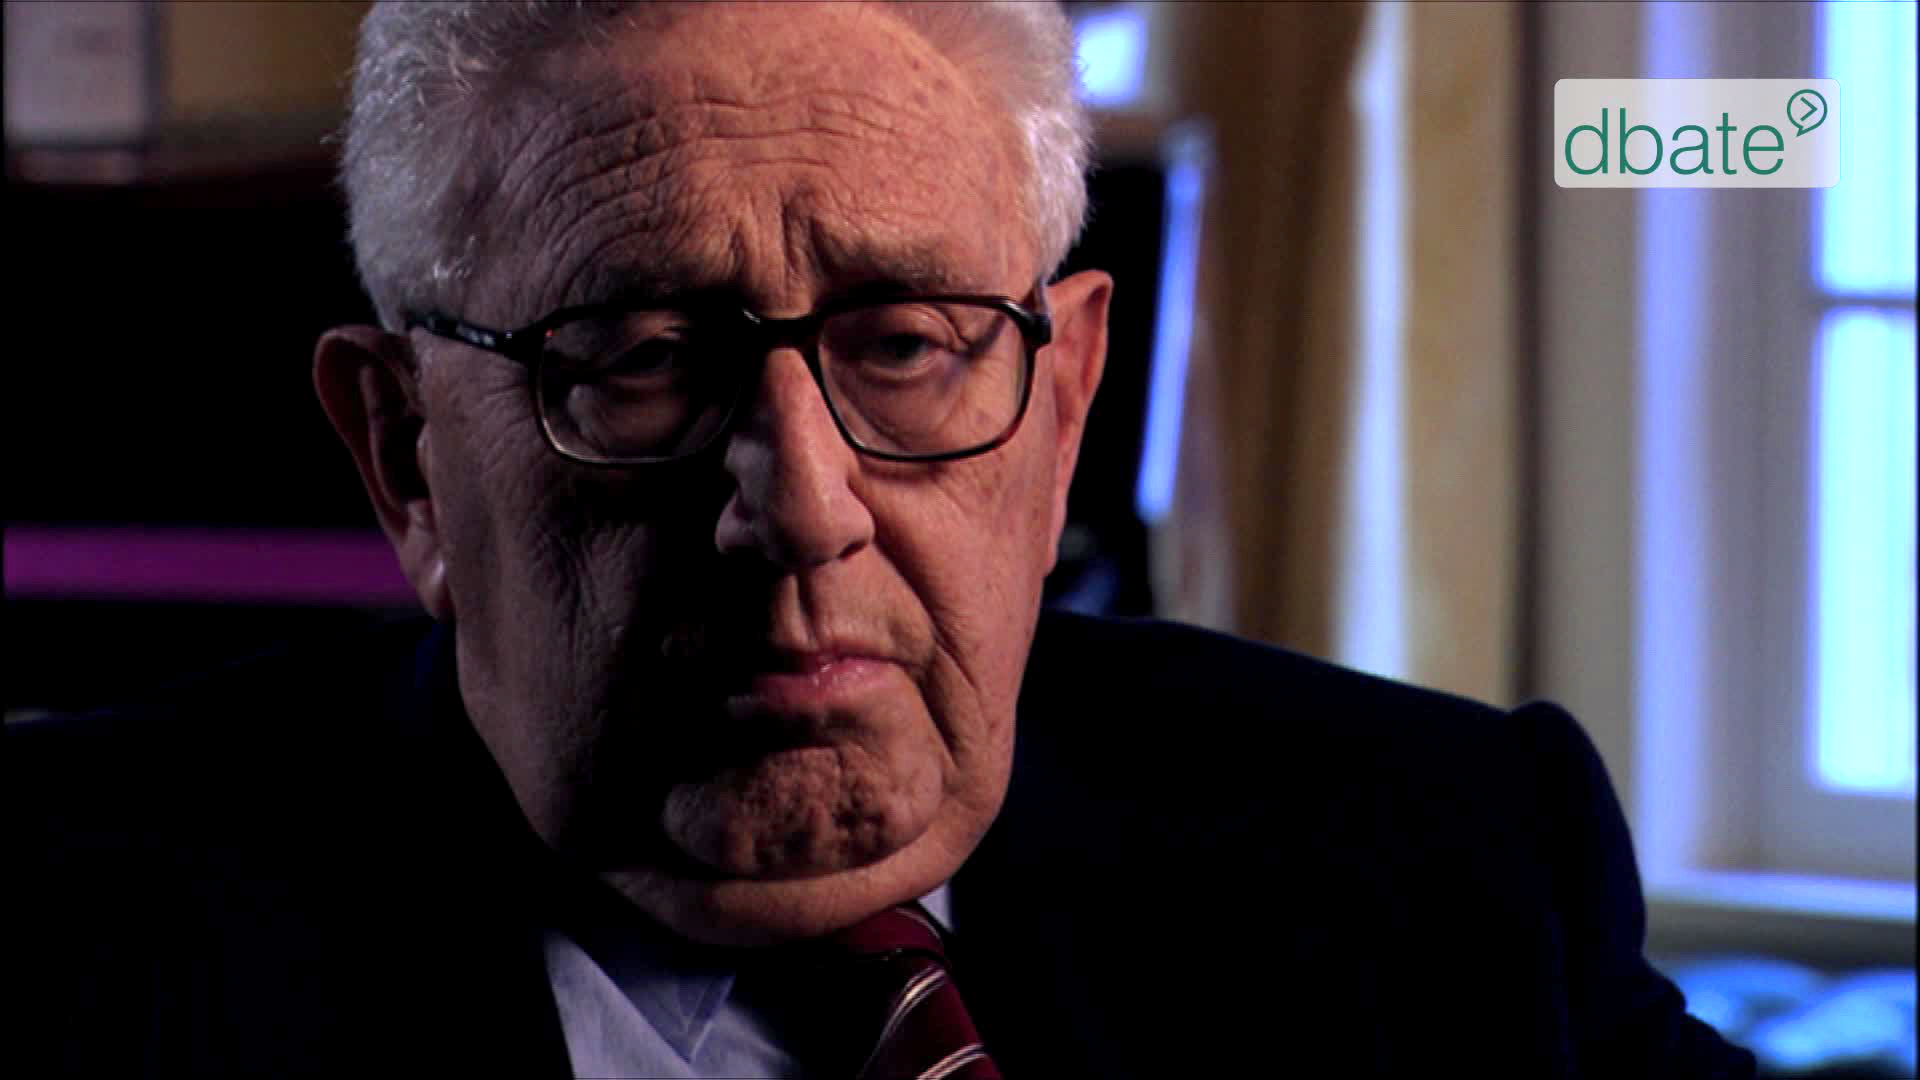 Screenshot_Henry Kissinger_dbate (1)